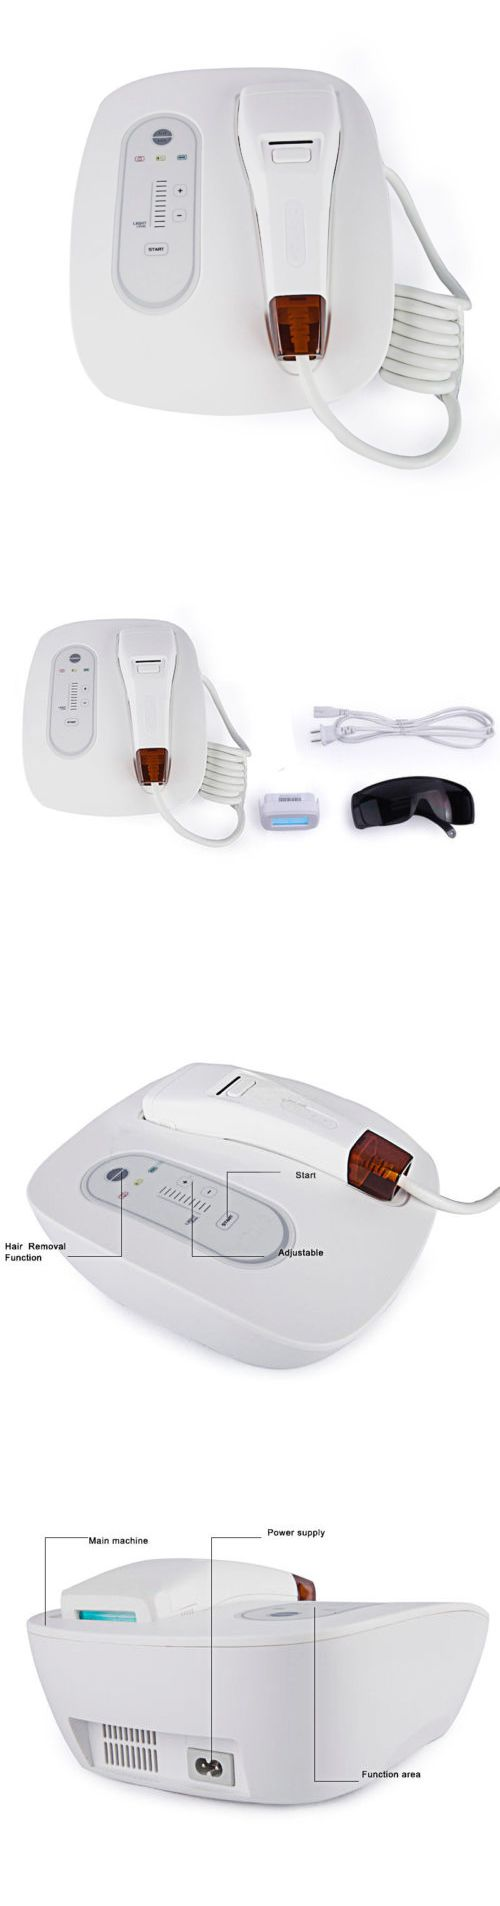 Laser Hair Removal and IPL: E-Light Ipl Hair Removal Skin Rejuvenation Reduces Wrinkles Beauty Machine -> BUY IT NOW ONLY: $289 on eBay!